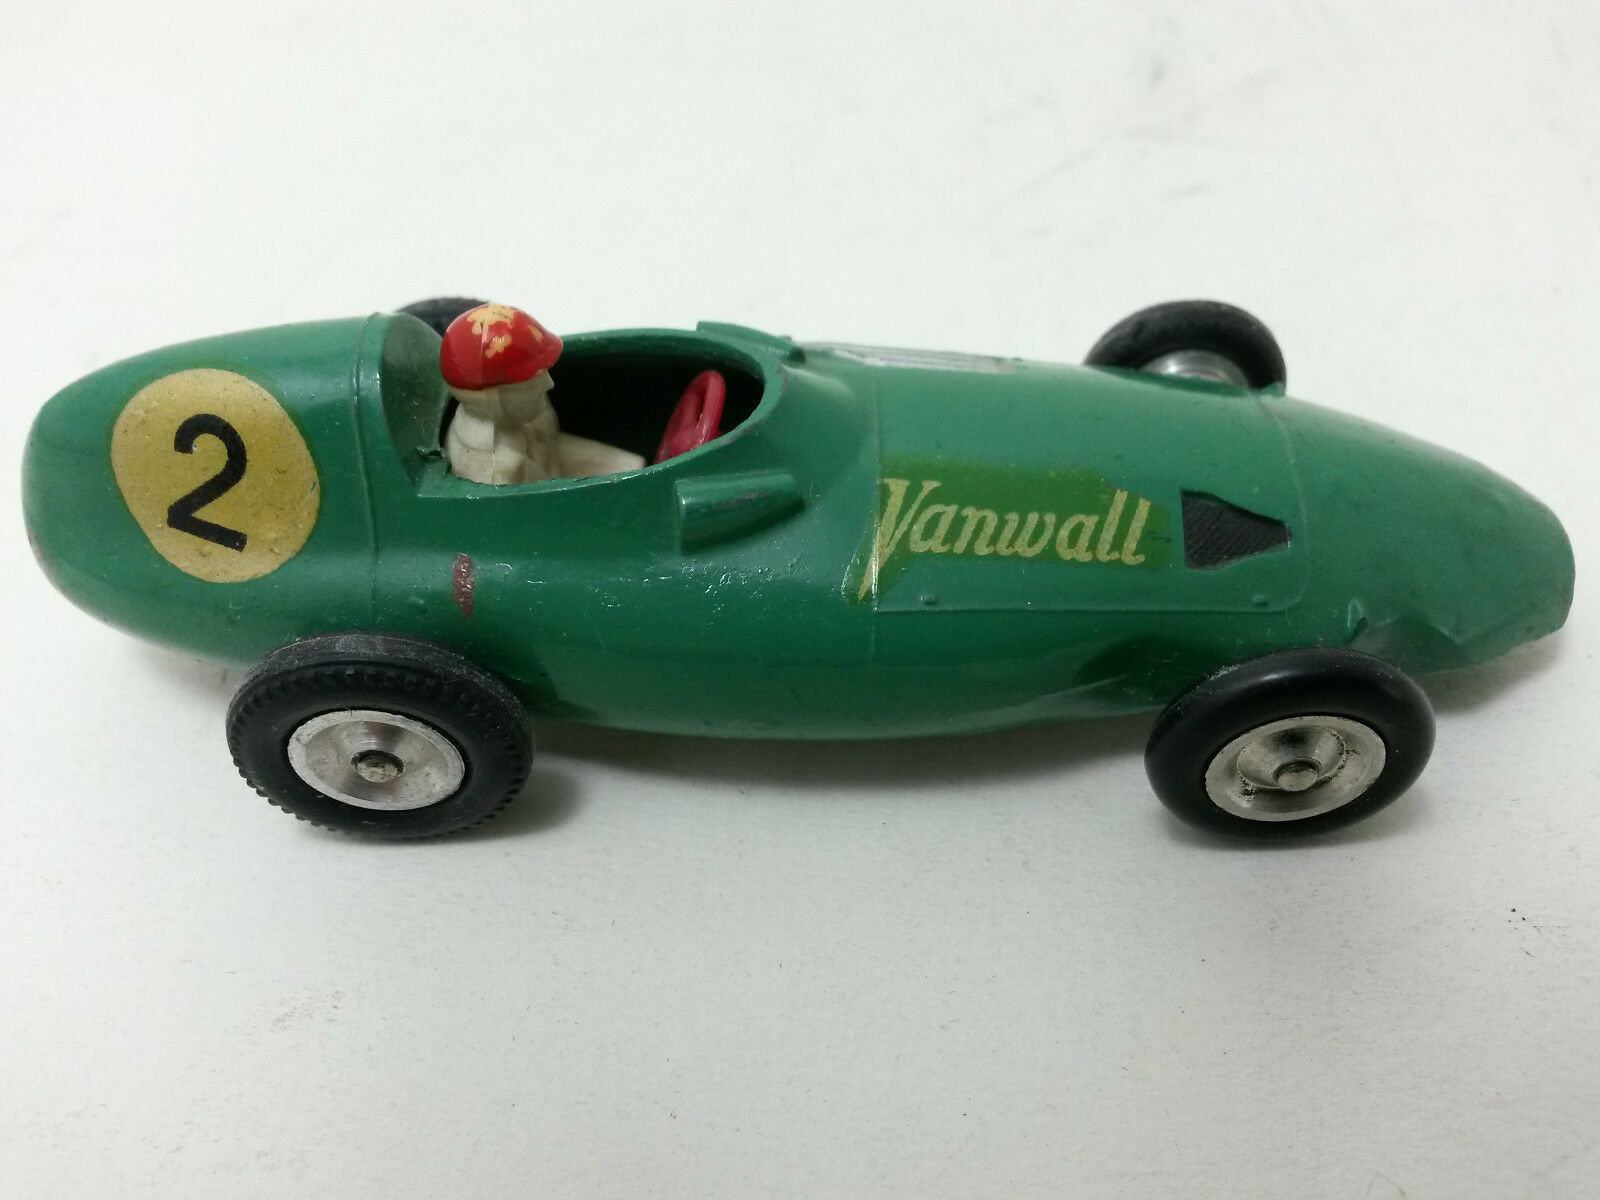 Solido Vanwall VW 5 F1 1:43 TTBE Formule 1 Stirling Moss Tony Brooks Taruffi